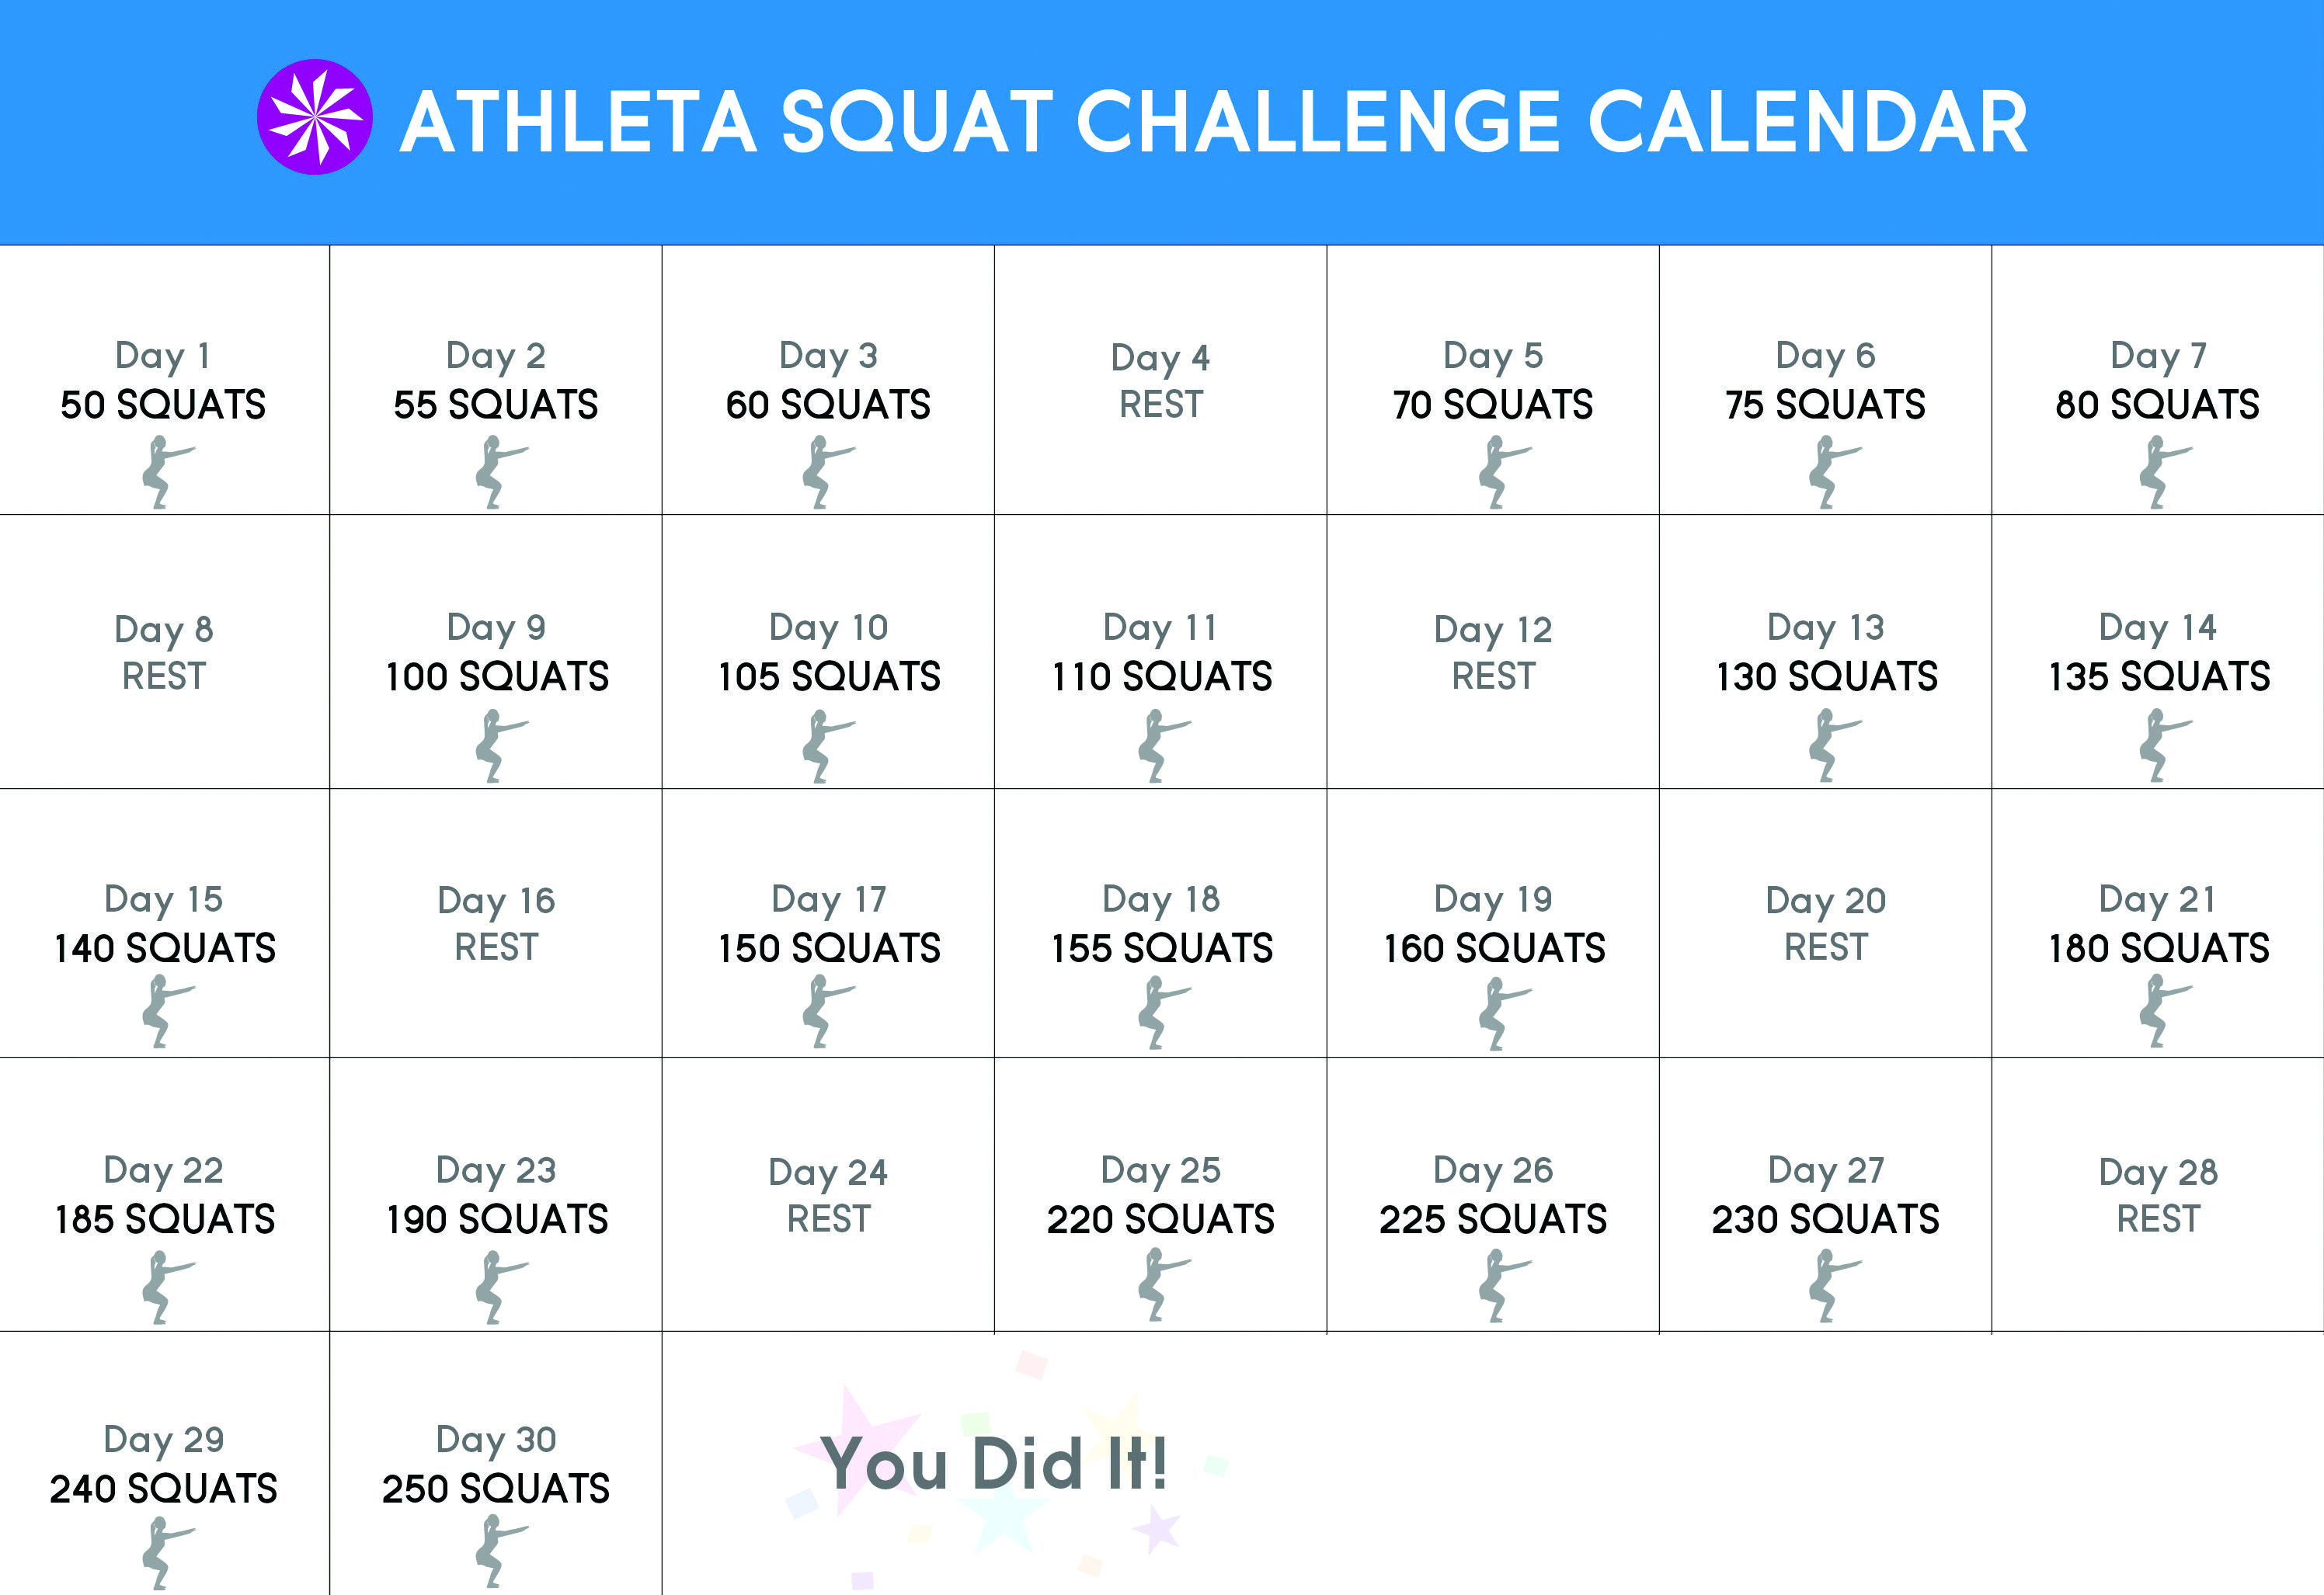 30 Day Squat Challenge Lets Get This Going! (From The Blog Throughout 30 Day Squat Challenge Schedule Calendar